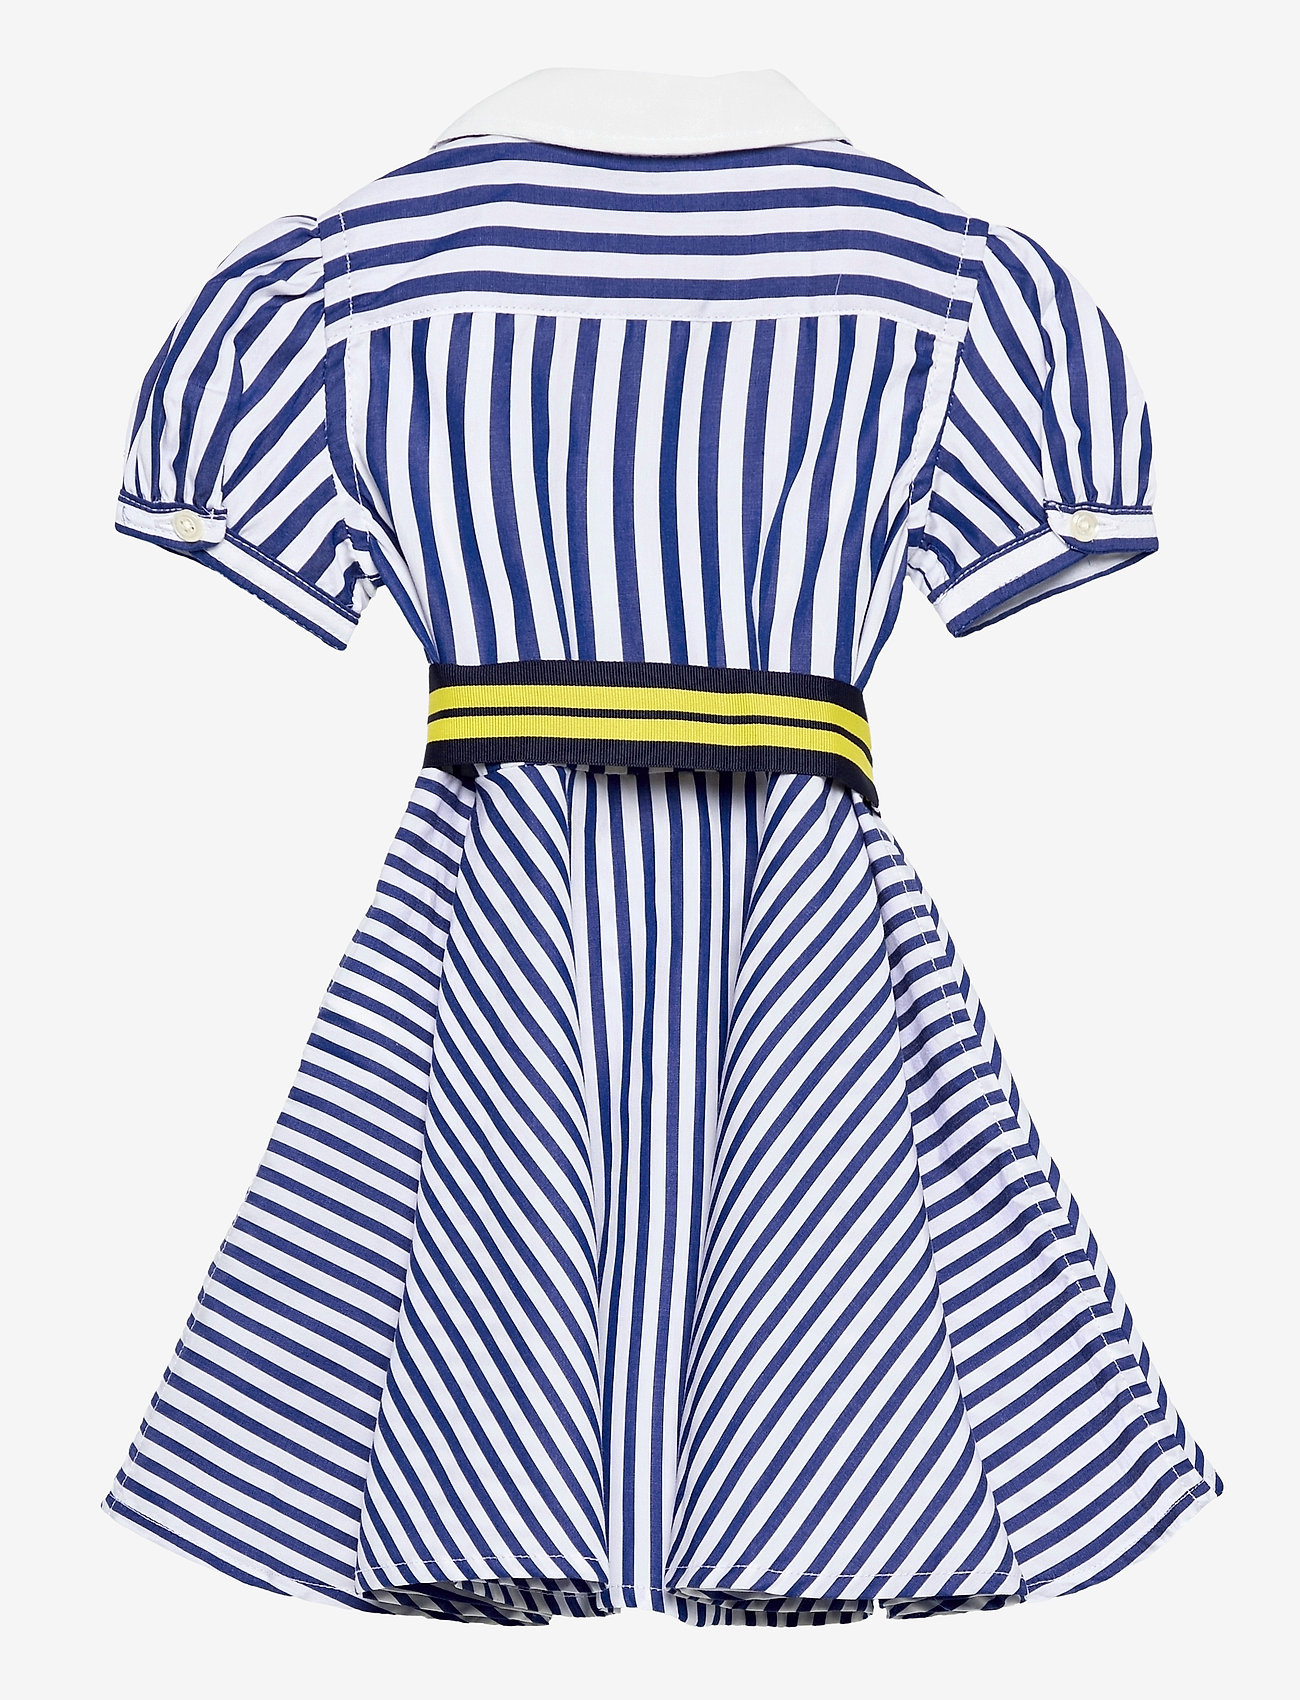 Ralph Lauren Baby - Shirtdress, Belt, & Bloomer - dresses - blue/white - 1